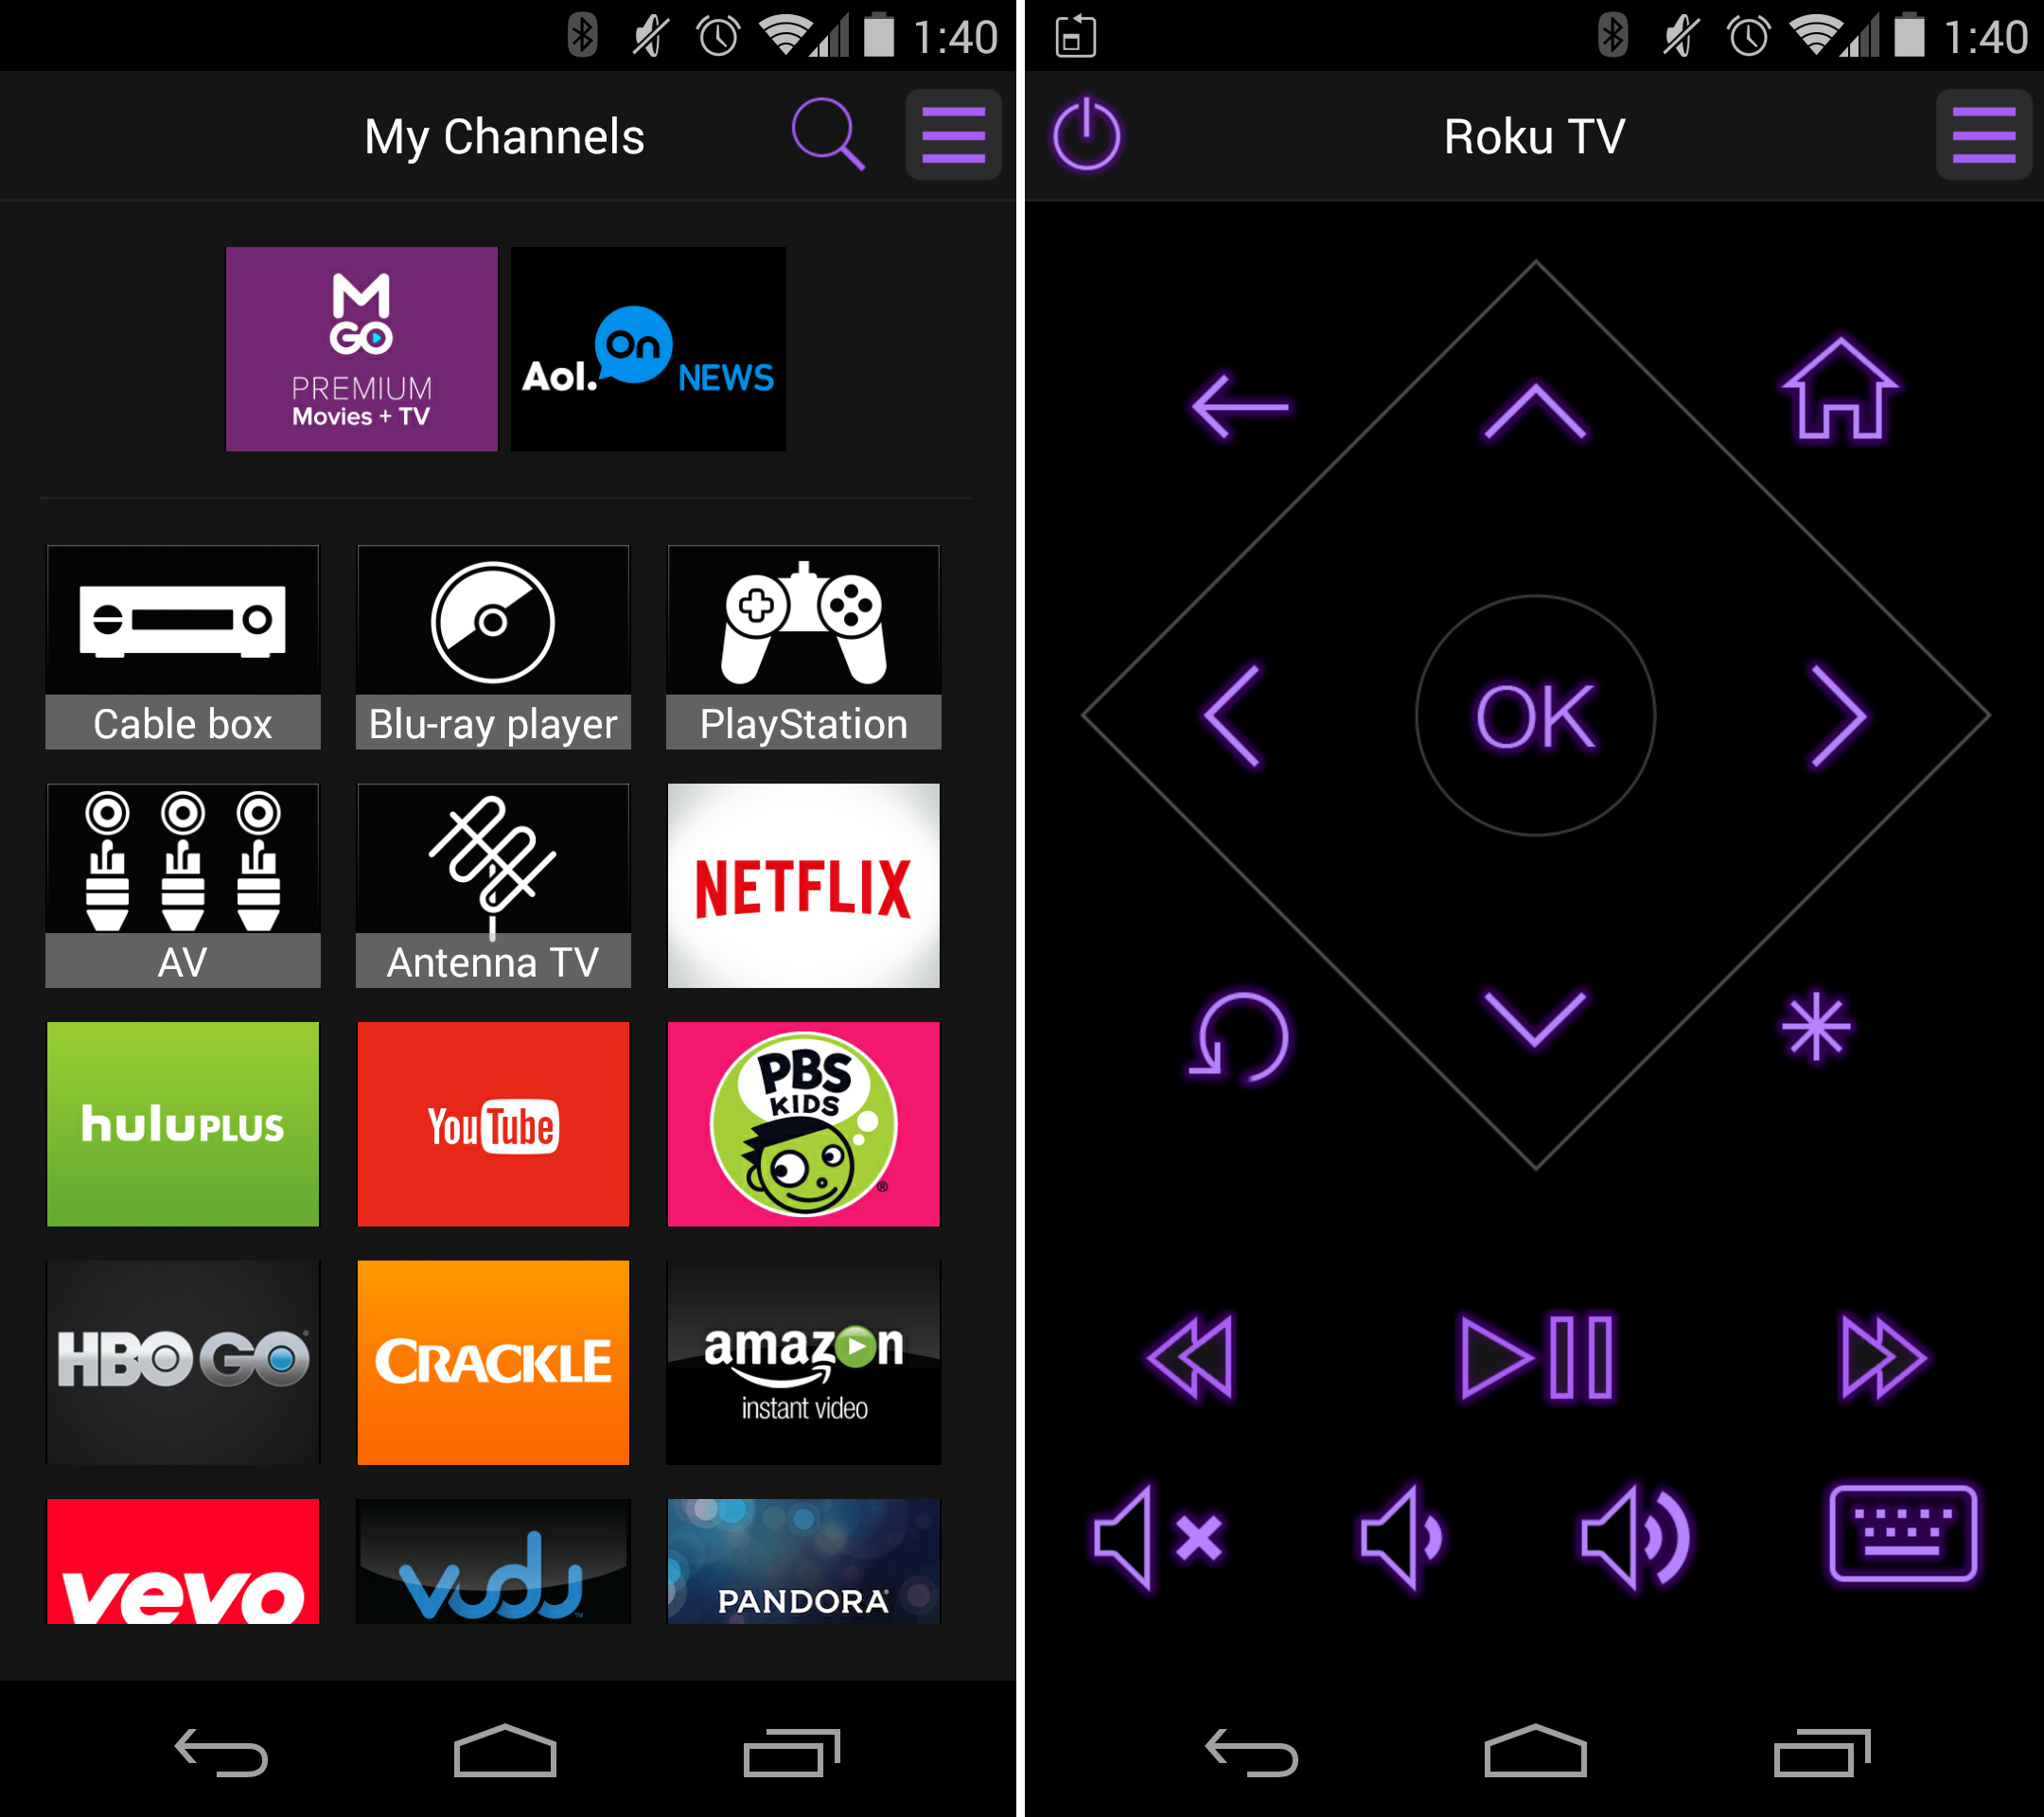 Control Roku TV with the free Roku mobile app for Android, iOS and